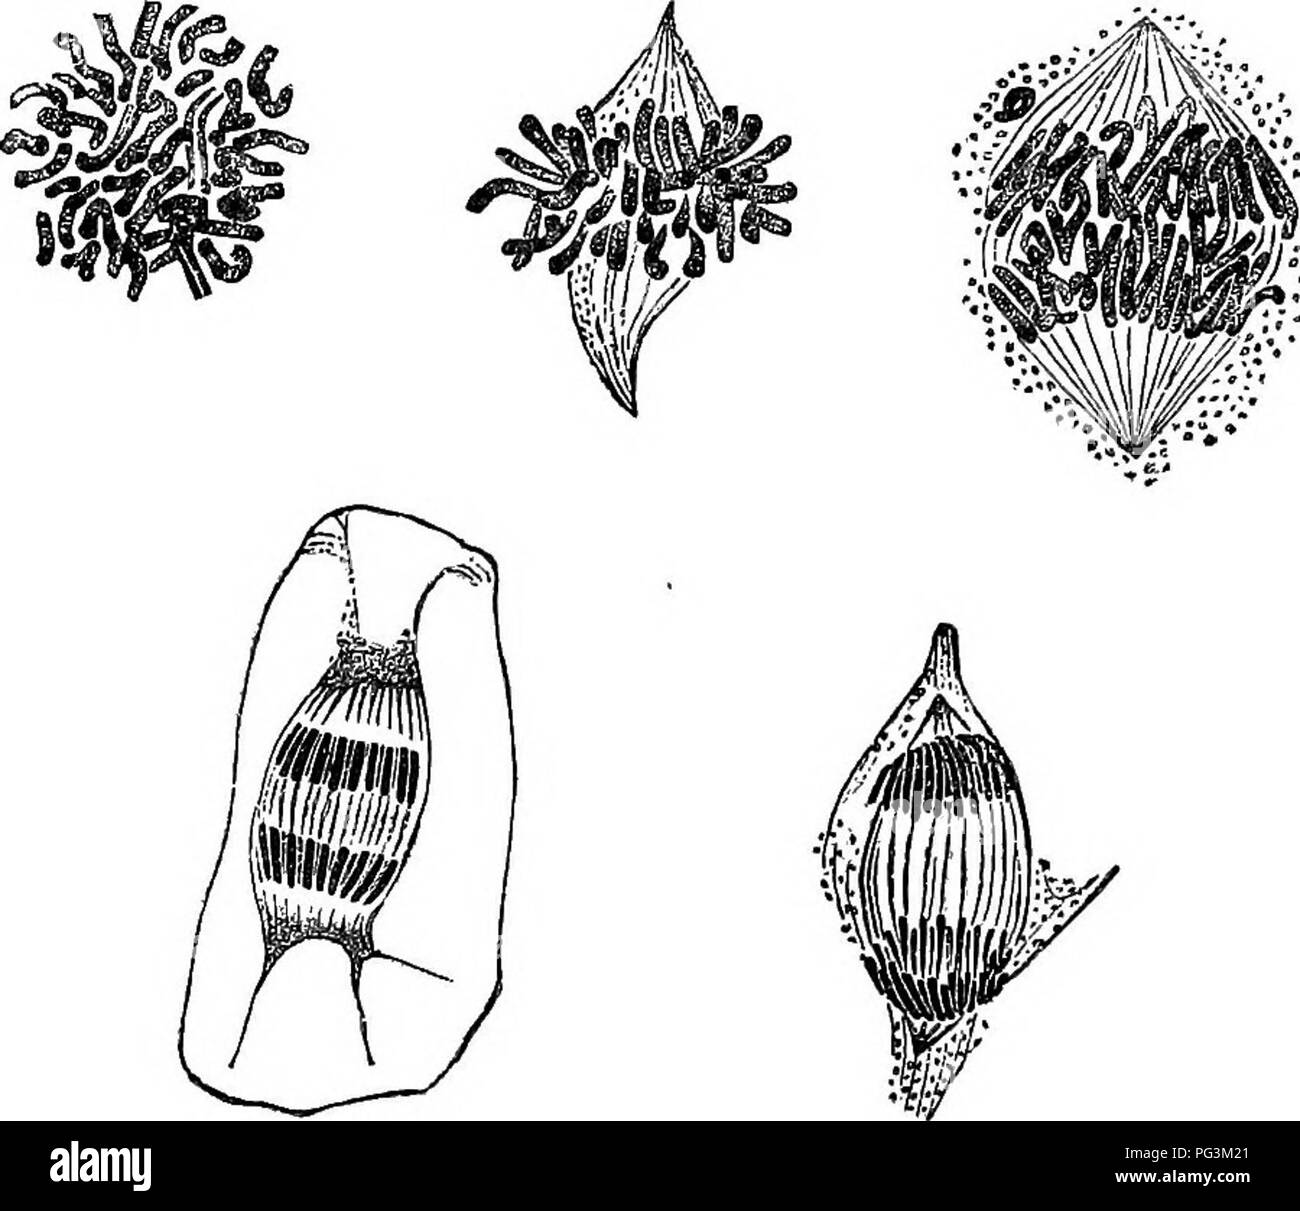 Striation Black and White Stock Photos & Images - Alamy